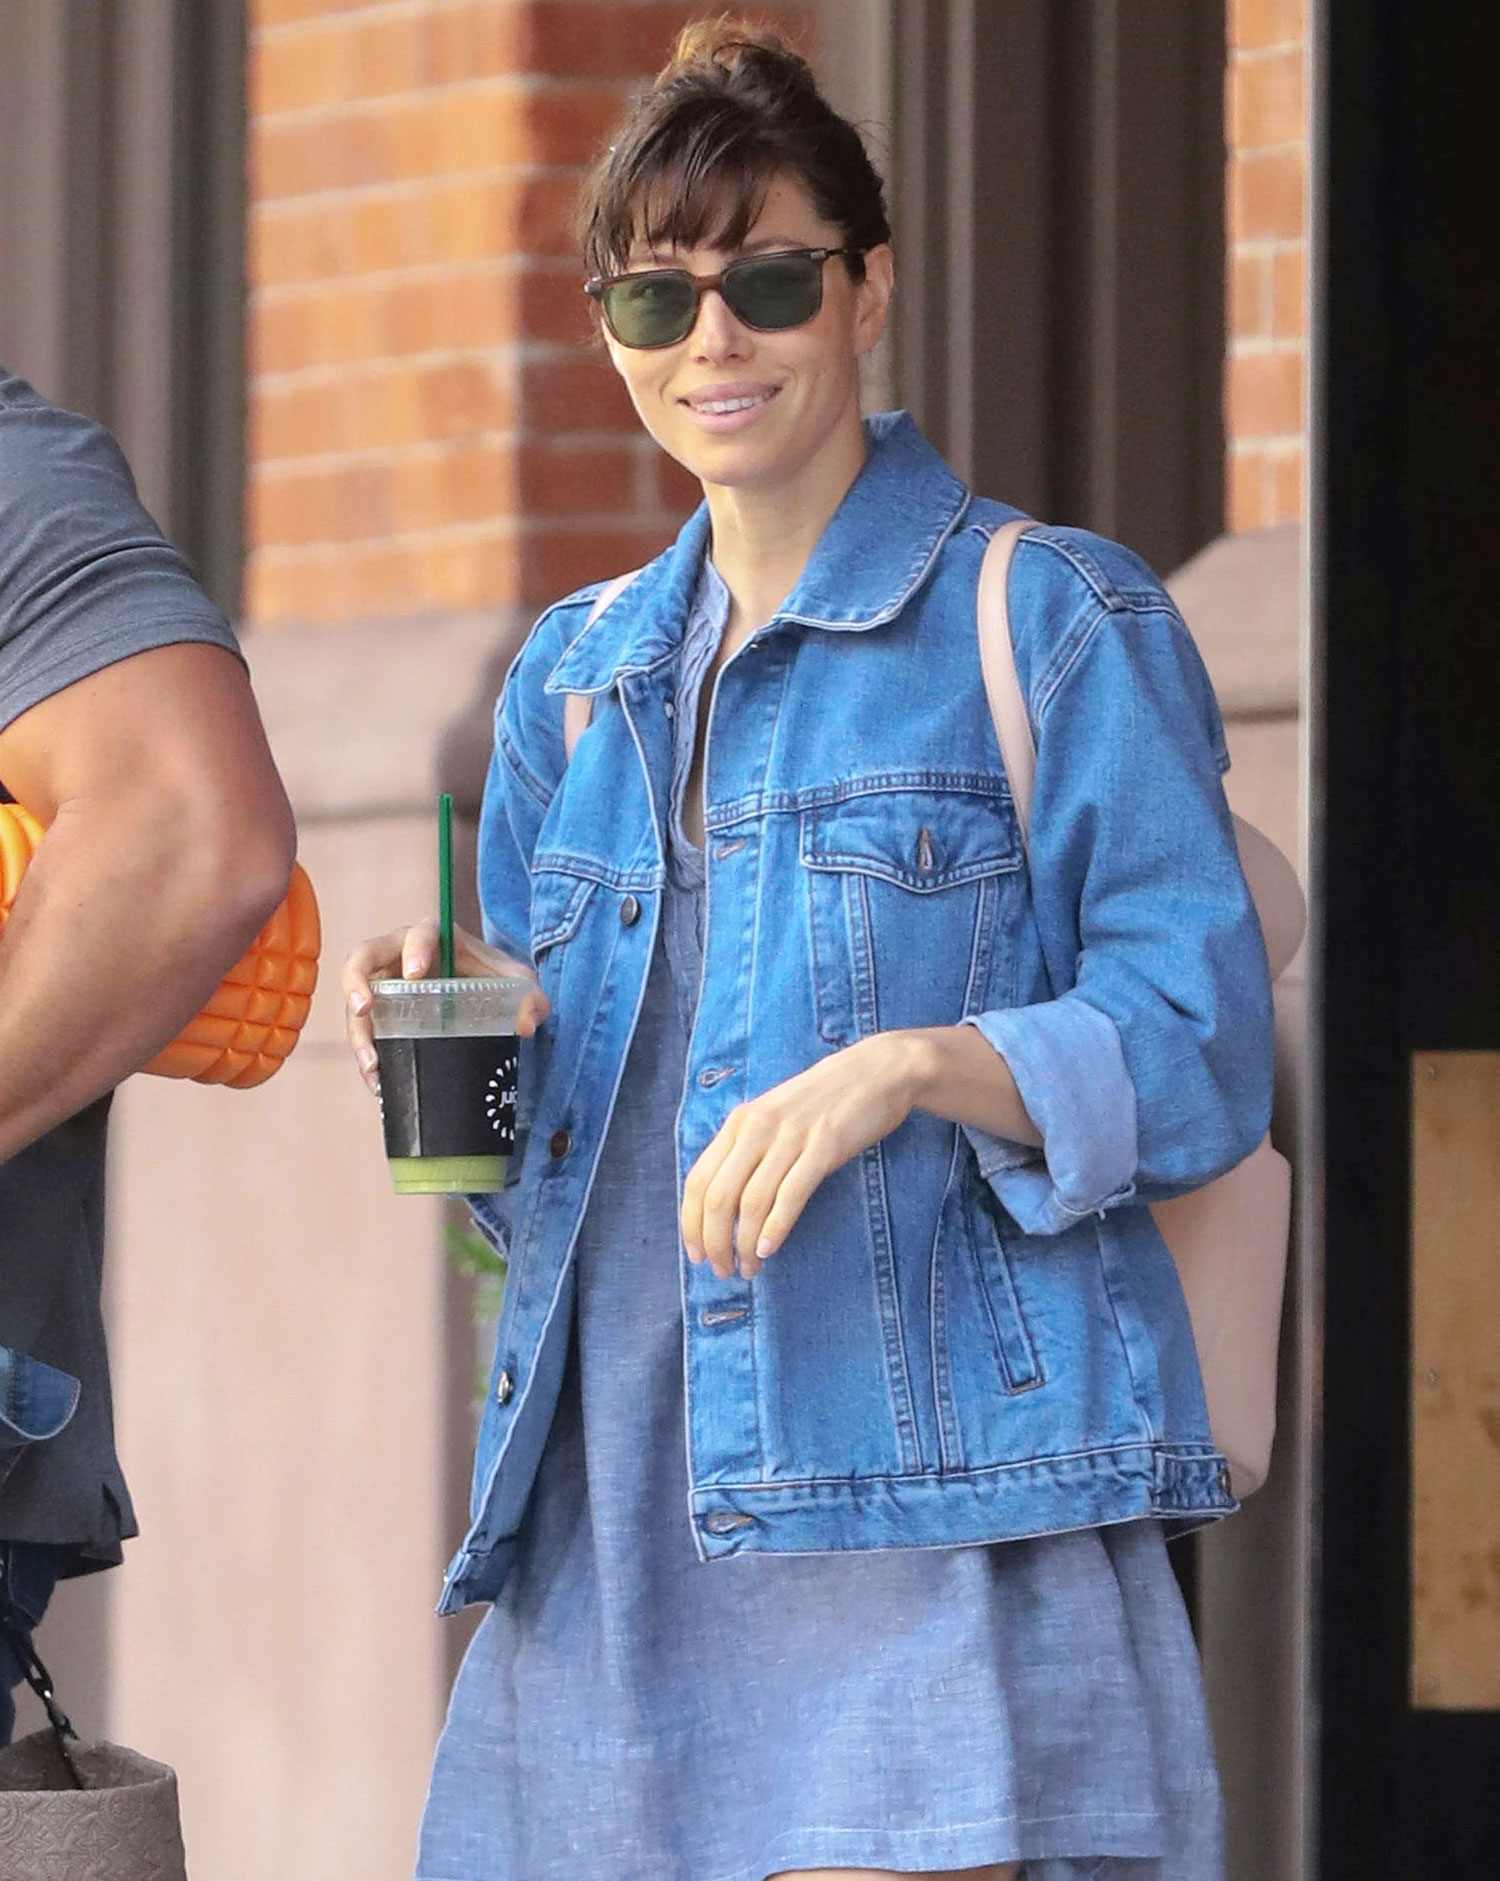 Jessica Biel is all smiles as she starts her day in NYC